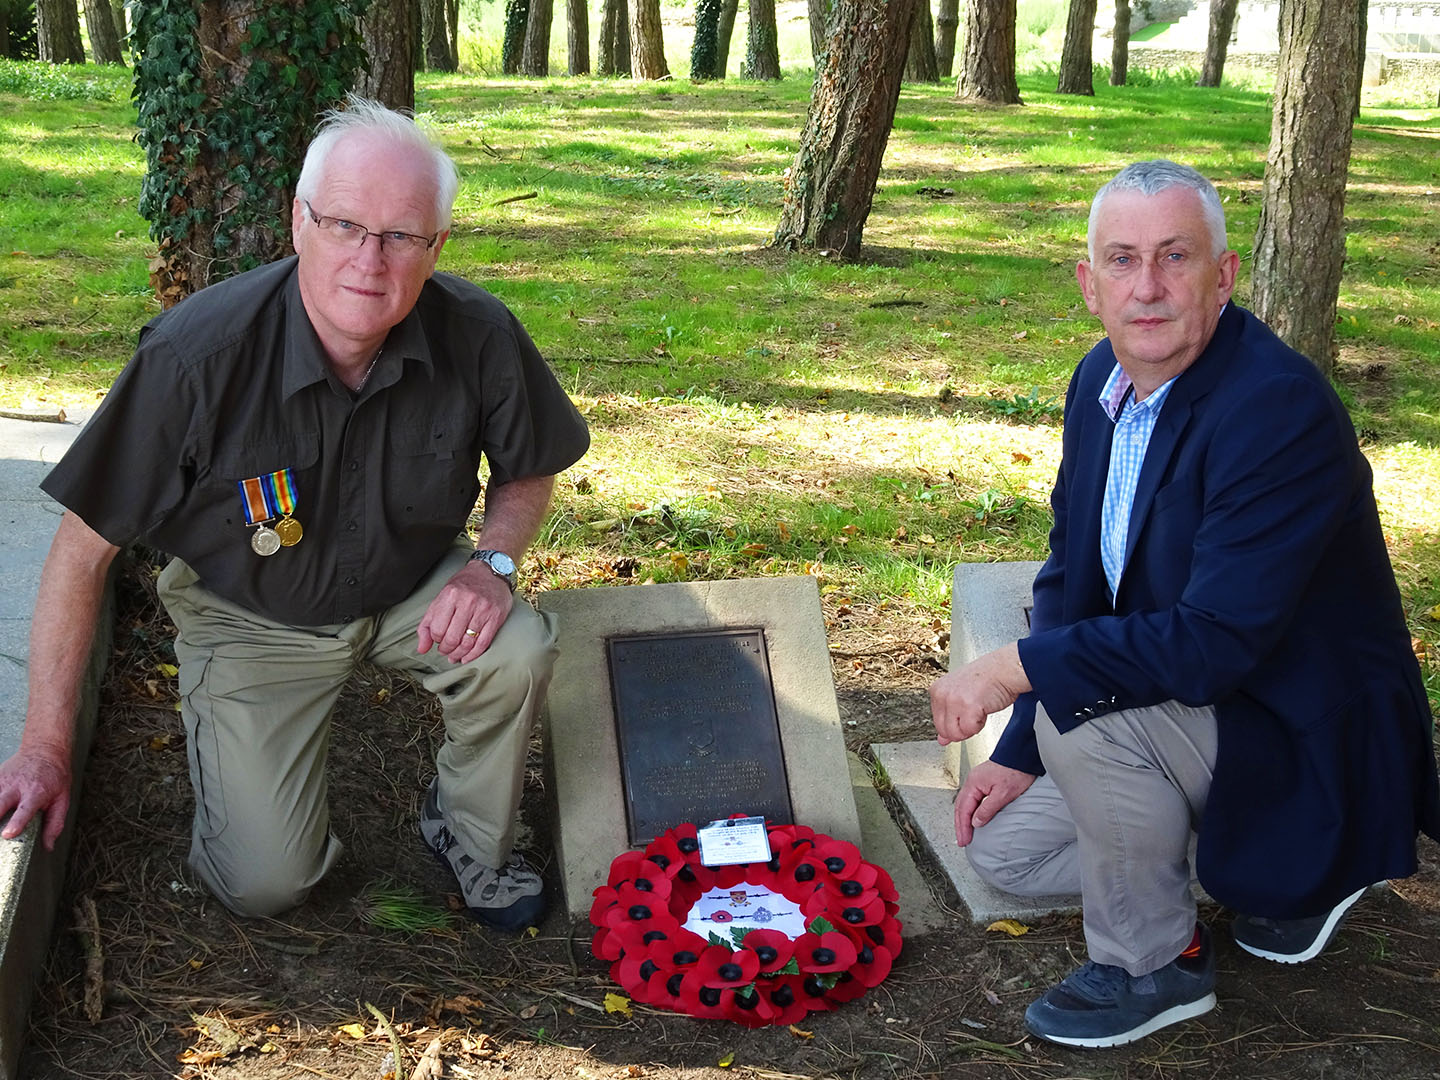 Steve Williams and Sir Lindsay Hoyle on the Somme in September 2018